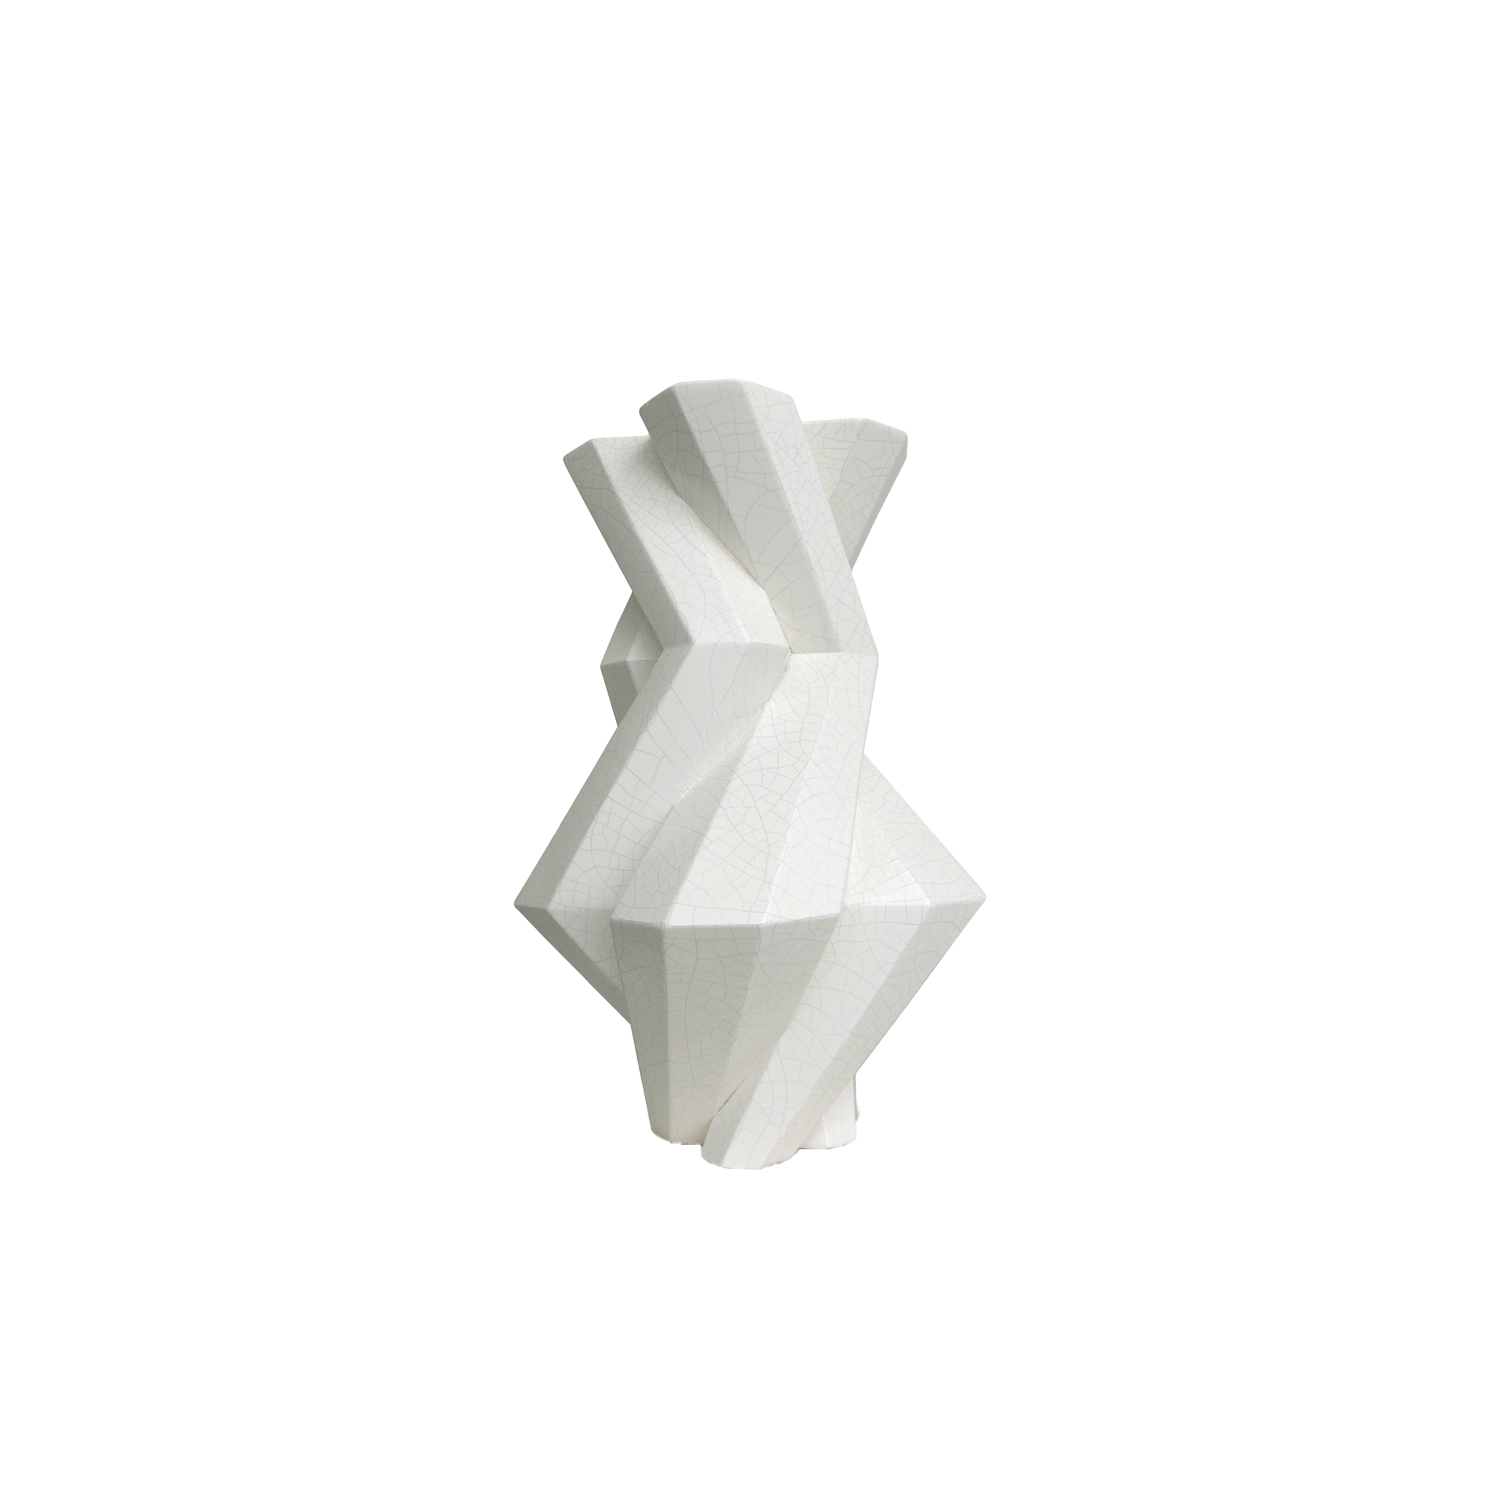 Fortress Castle Vase Crackled White - Designer Lara Bohinc explores the marriage of ancient and futuristic form in the new Fortress Vase range, which has created a more complex geometric and modern structure from the original inspiration of the octagonal towers at the Diocletian Palace in Croatia. The resulting hexagonal blocks interlock and embrace to allow the play of light and shade on the many surfaces and angles. There are four Fortress shapes: the larger Column and Castle (45cm height), the Pillar (30cm height) and the Tower vase (37cm height). These are hand made from ceramic in a small Italian artisanal workshop and come in three finishes: dark gold, bronze and speckled white.  | Matter of Stuff